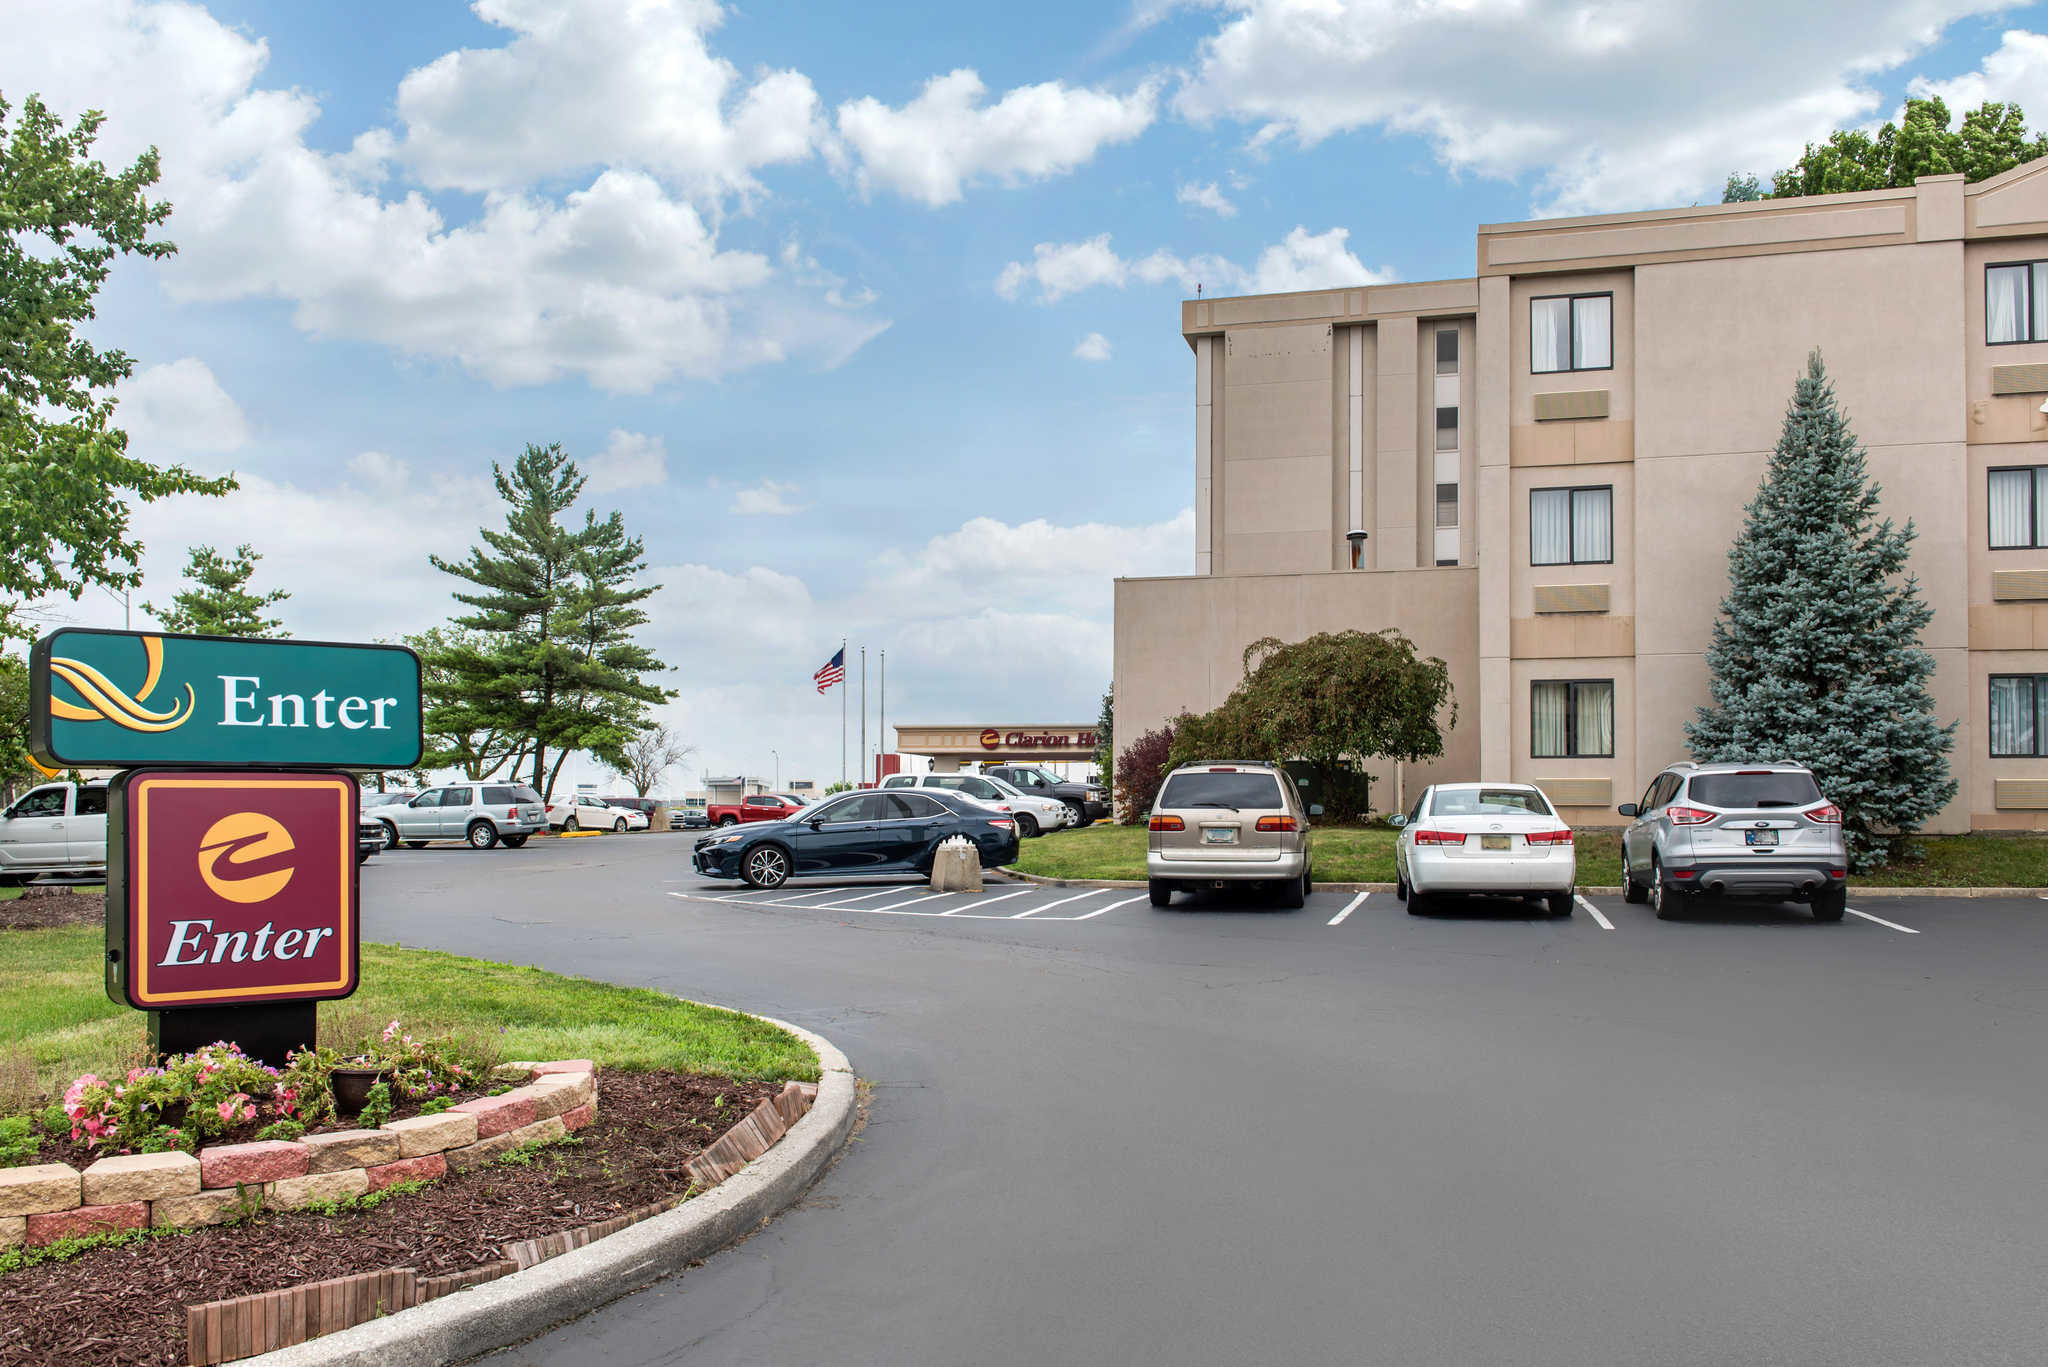 Hotels Indianapolis Indiana Airport